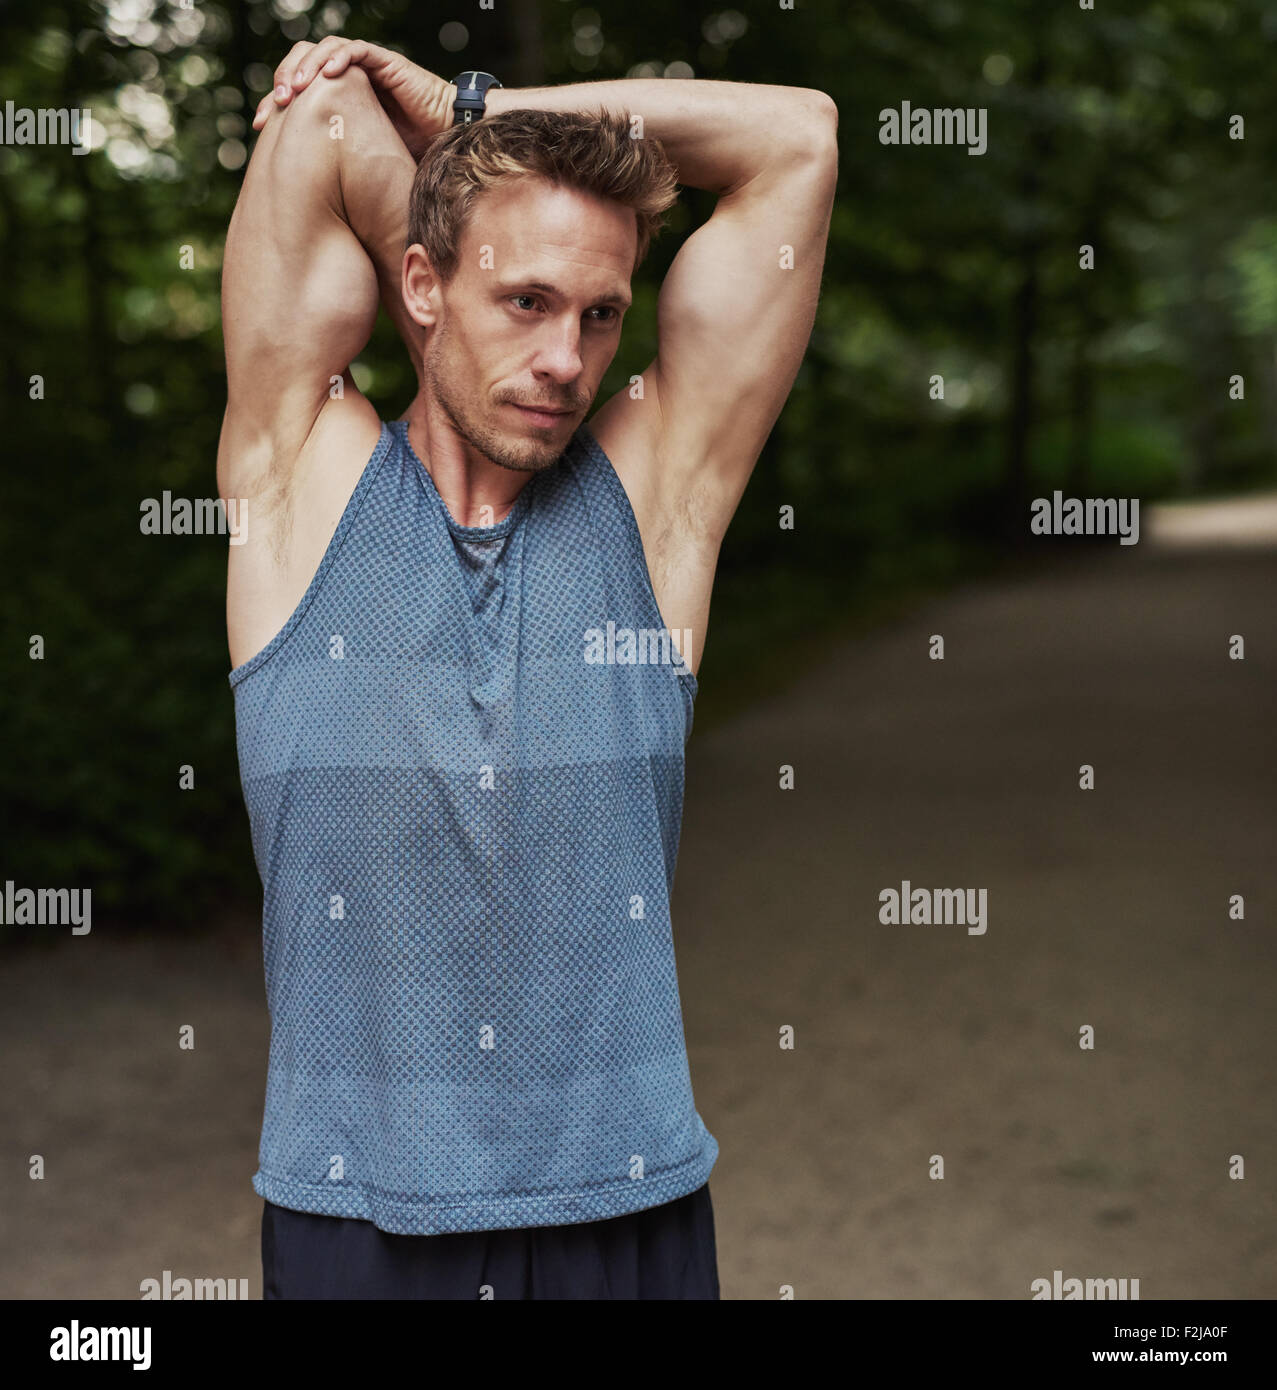 Half Body Shot of a Handsome Athletic Man Stretching his Arms Behind his Head at the Park. - Stock Image